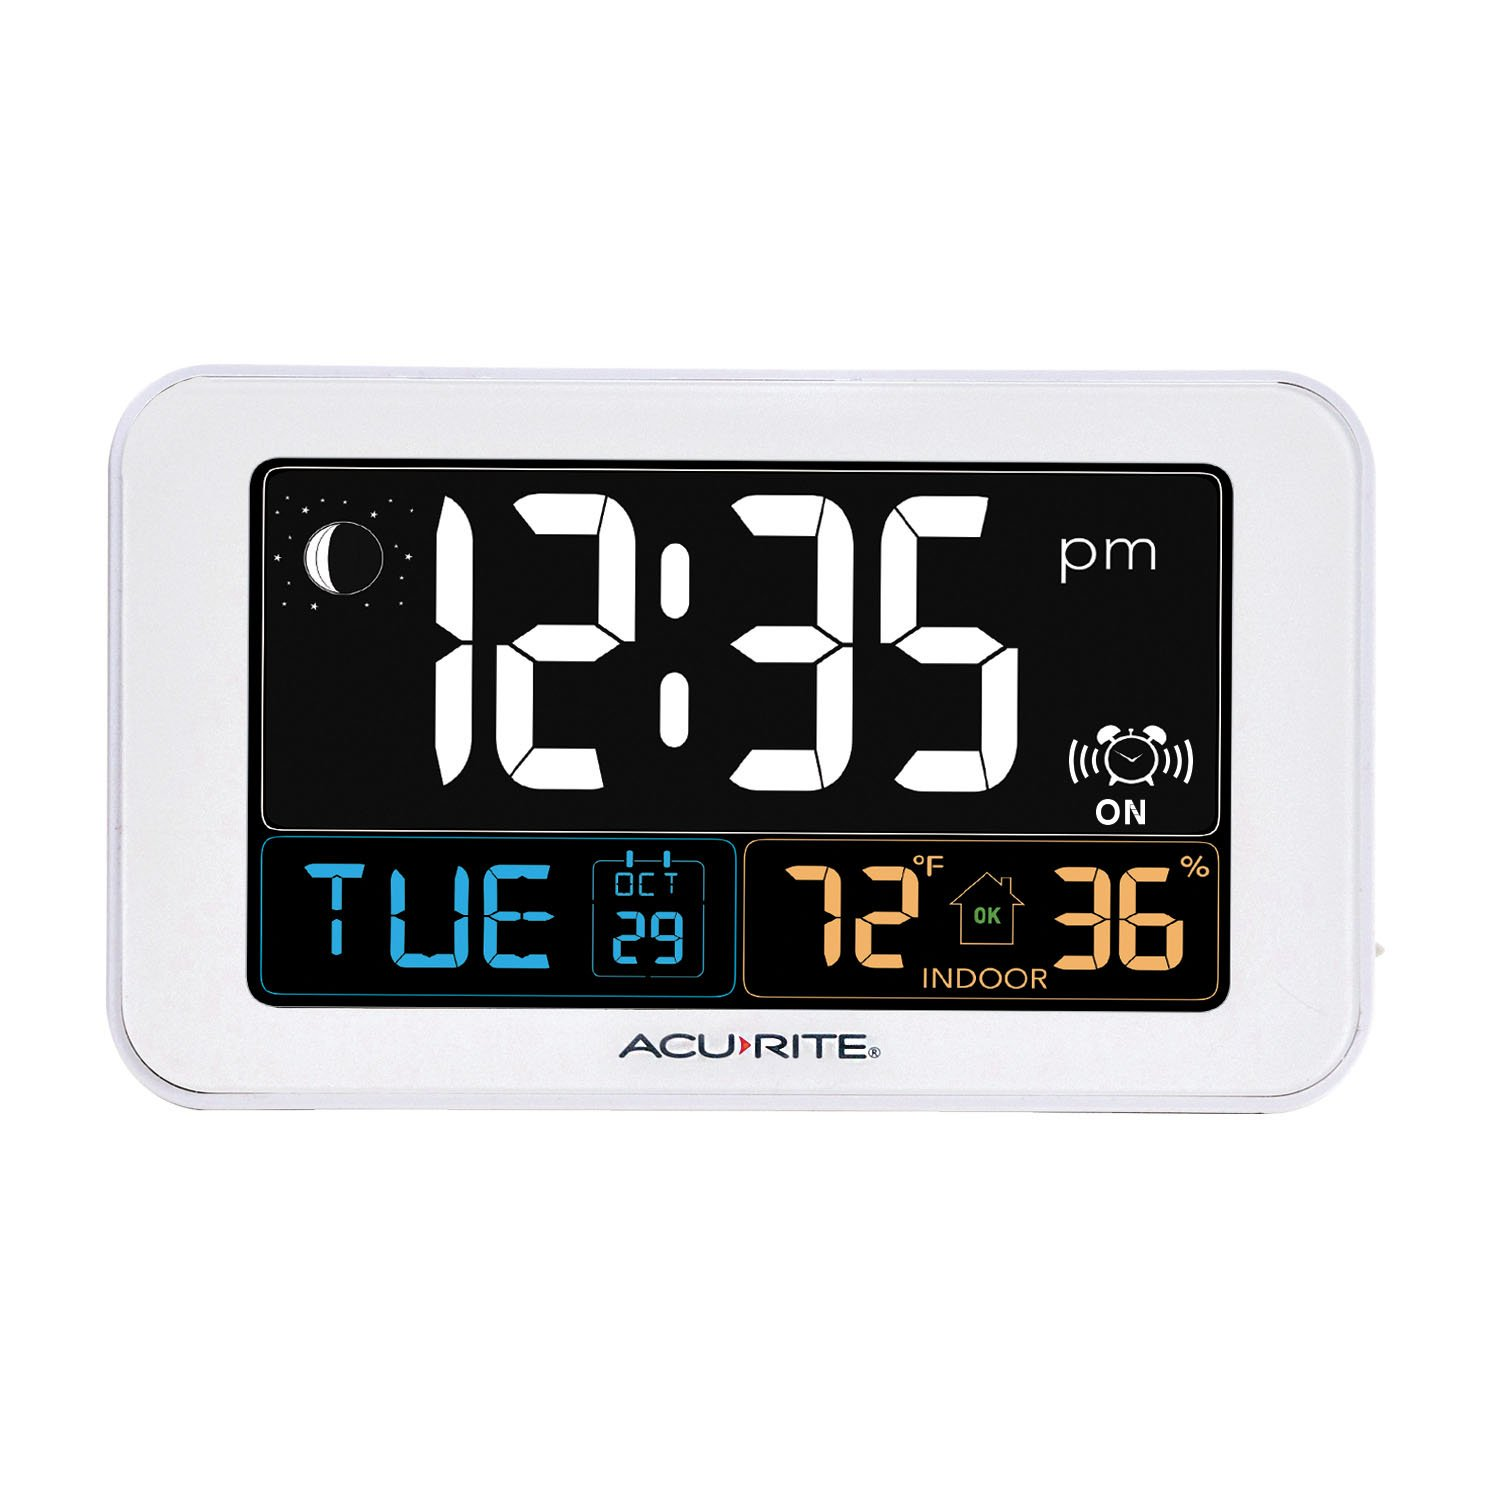 AcuRite 13040 Intelli-Time Alarm Clock with USB Charger, Indoor Temperature and Humidity Chaney Instruments 13040CA